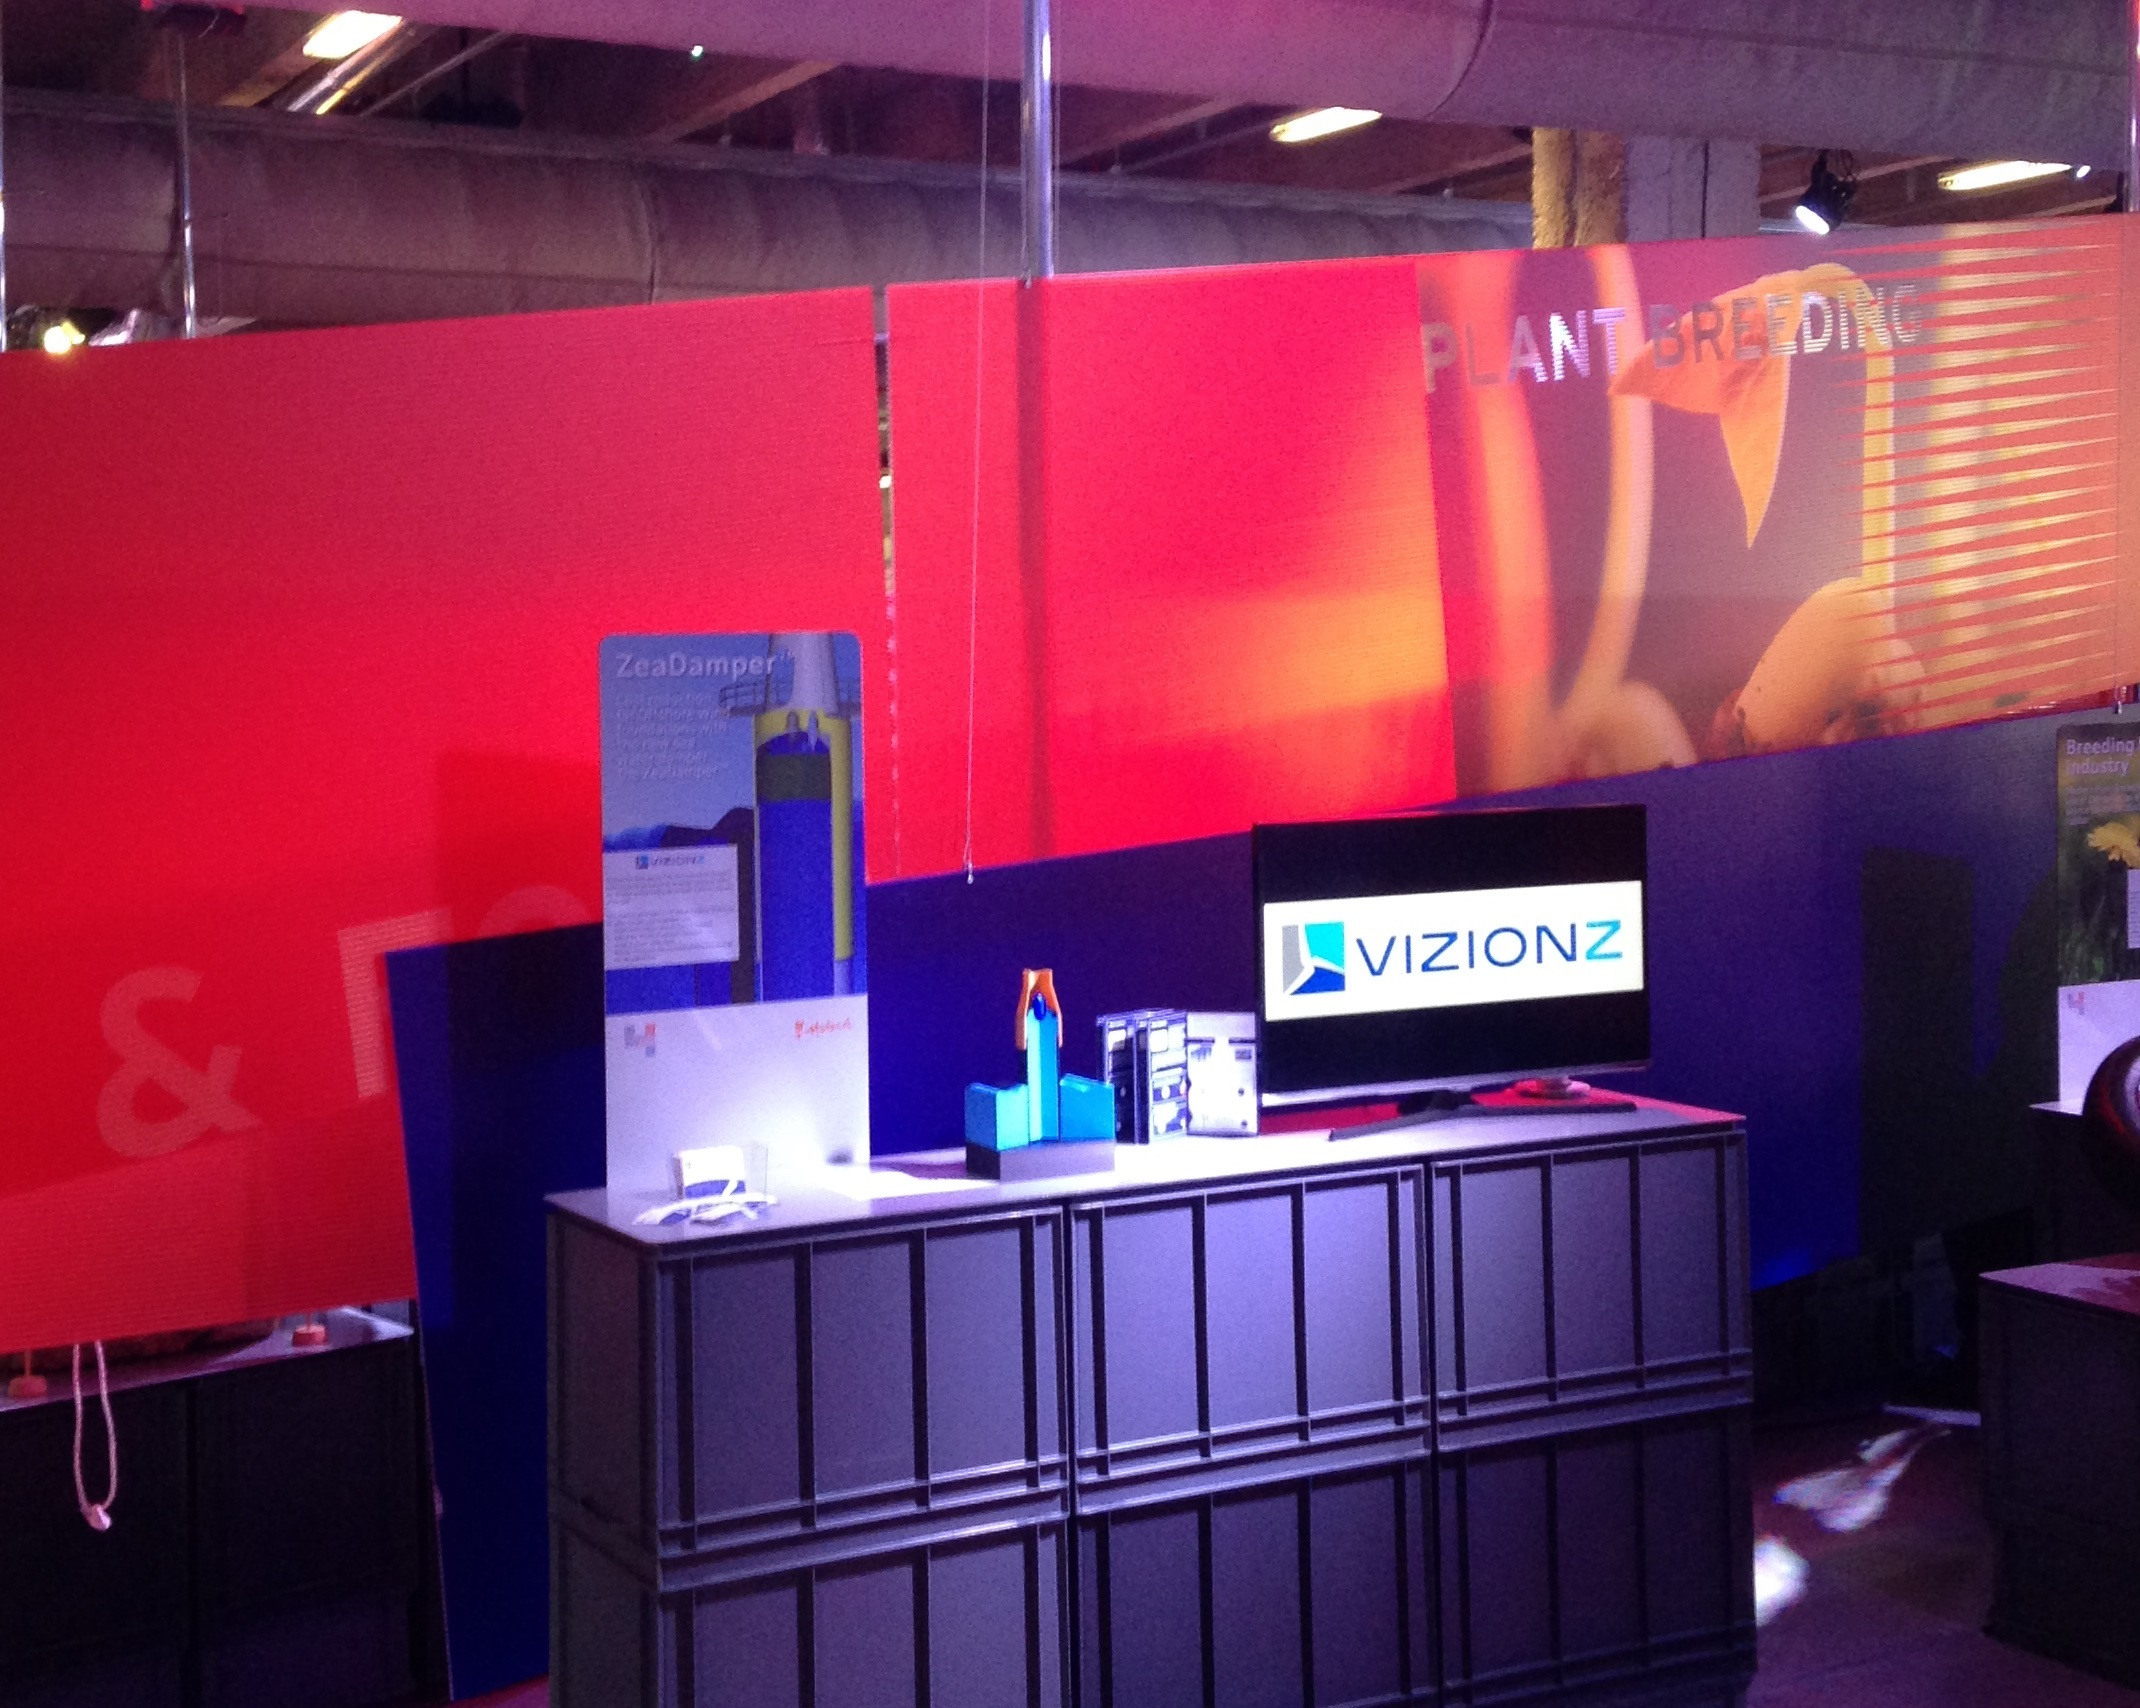 VizionZ Engineering Trade Mission France Expo Stand